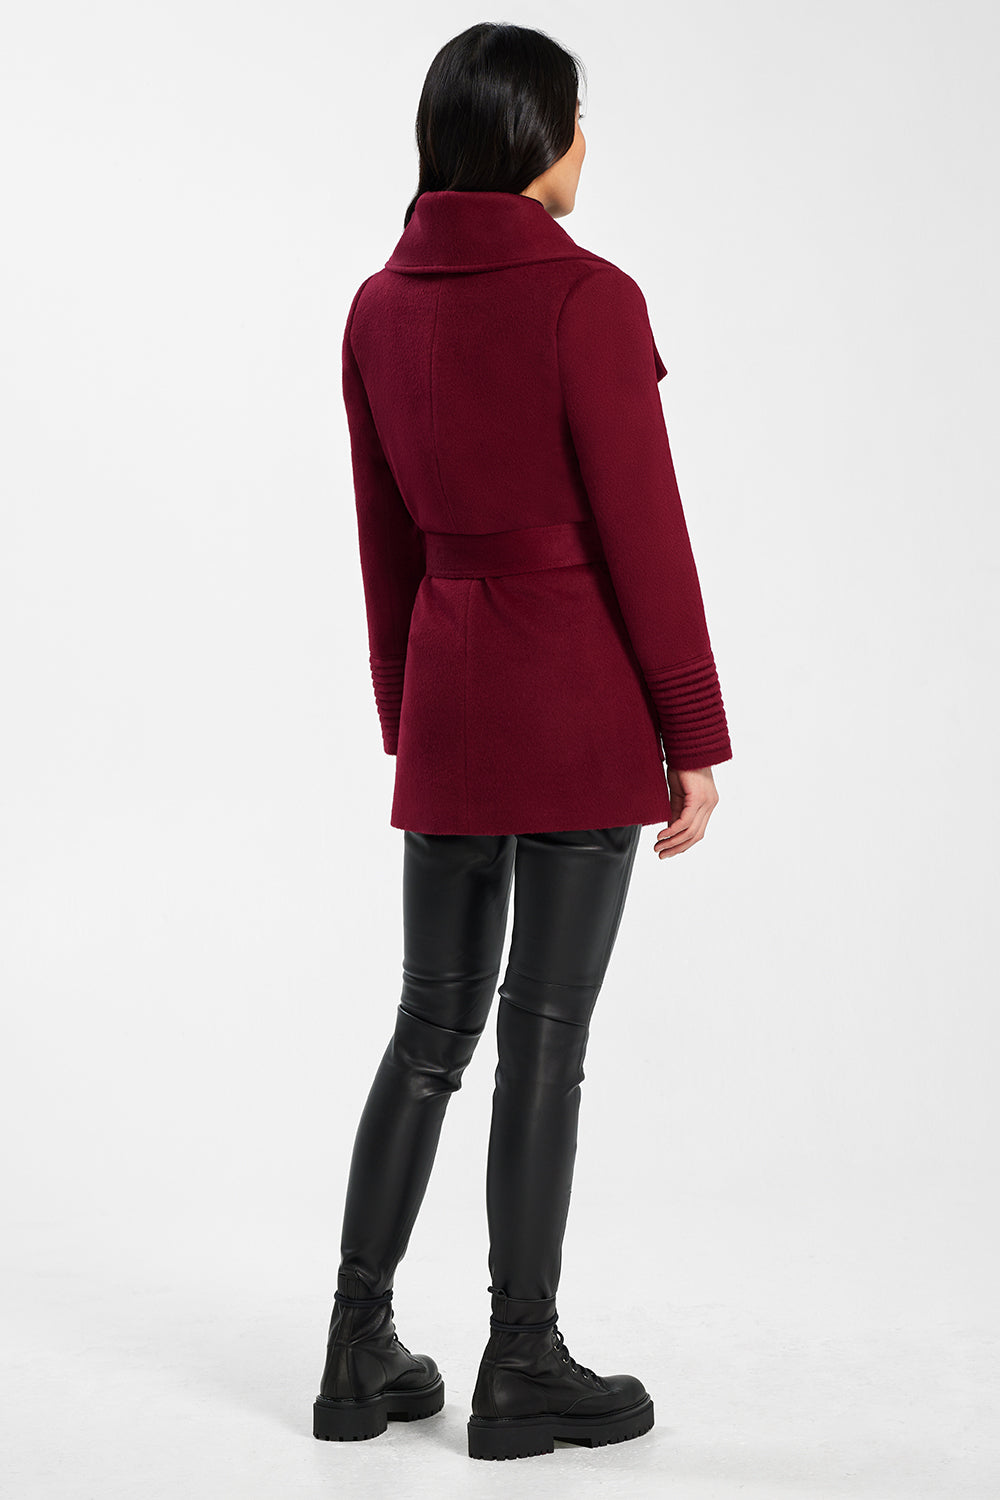 Sentaler Cropped Wide Collar Wrap Coat featured in Baby Alpaca and available in Garnet Red. Seen from back.